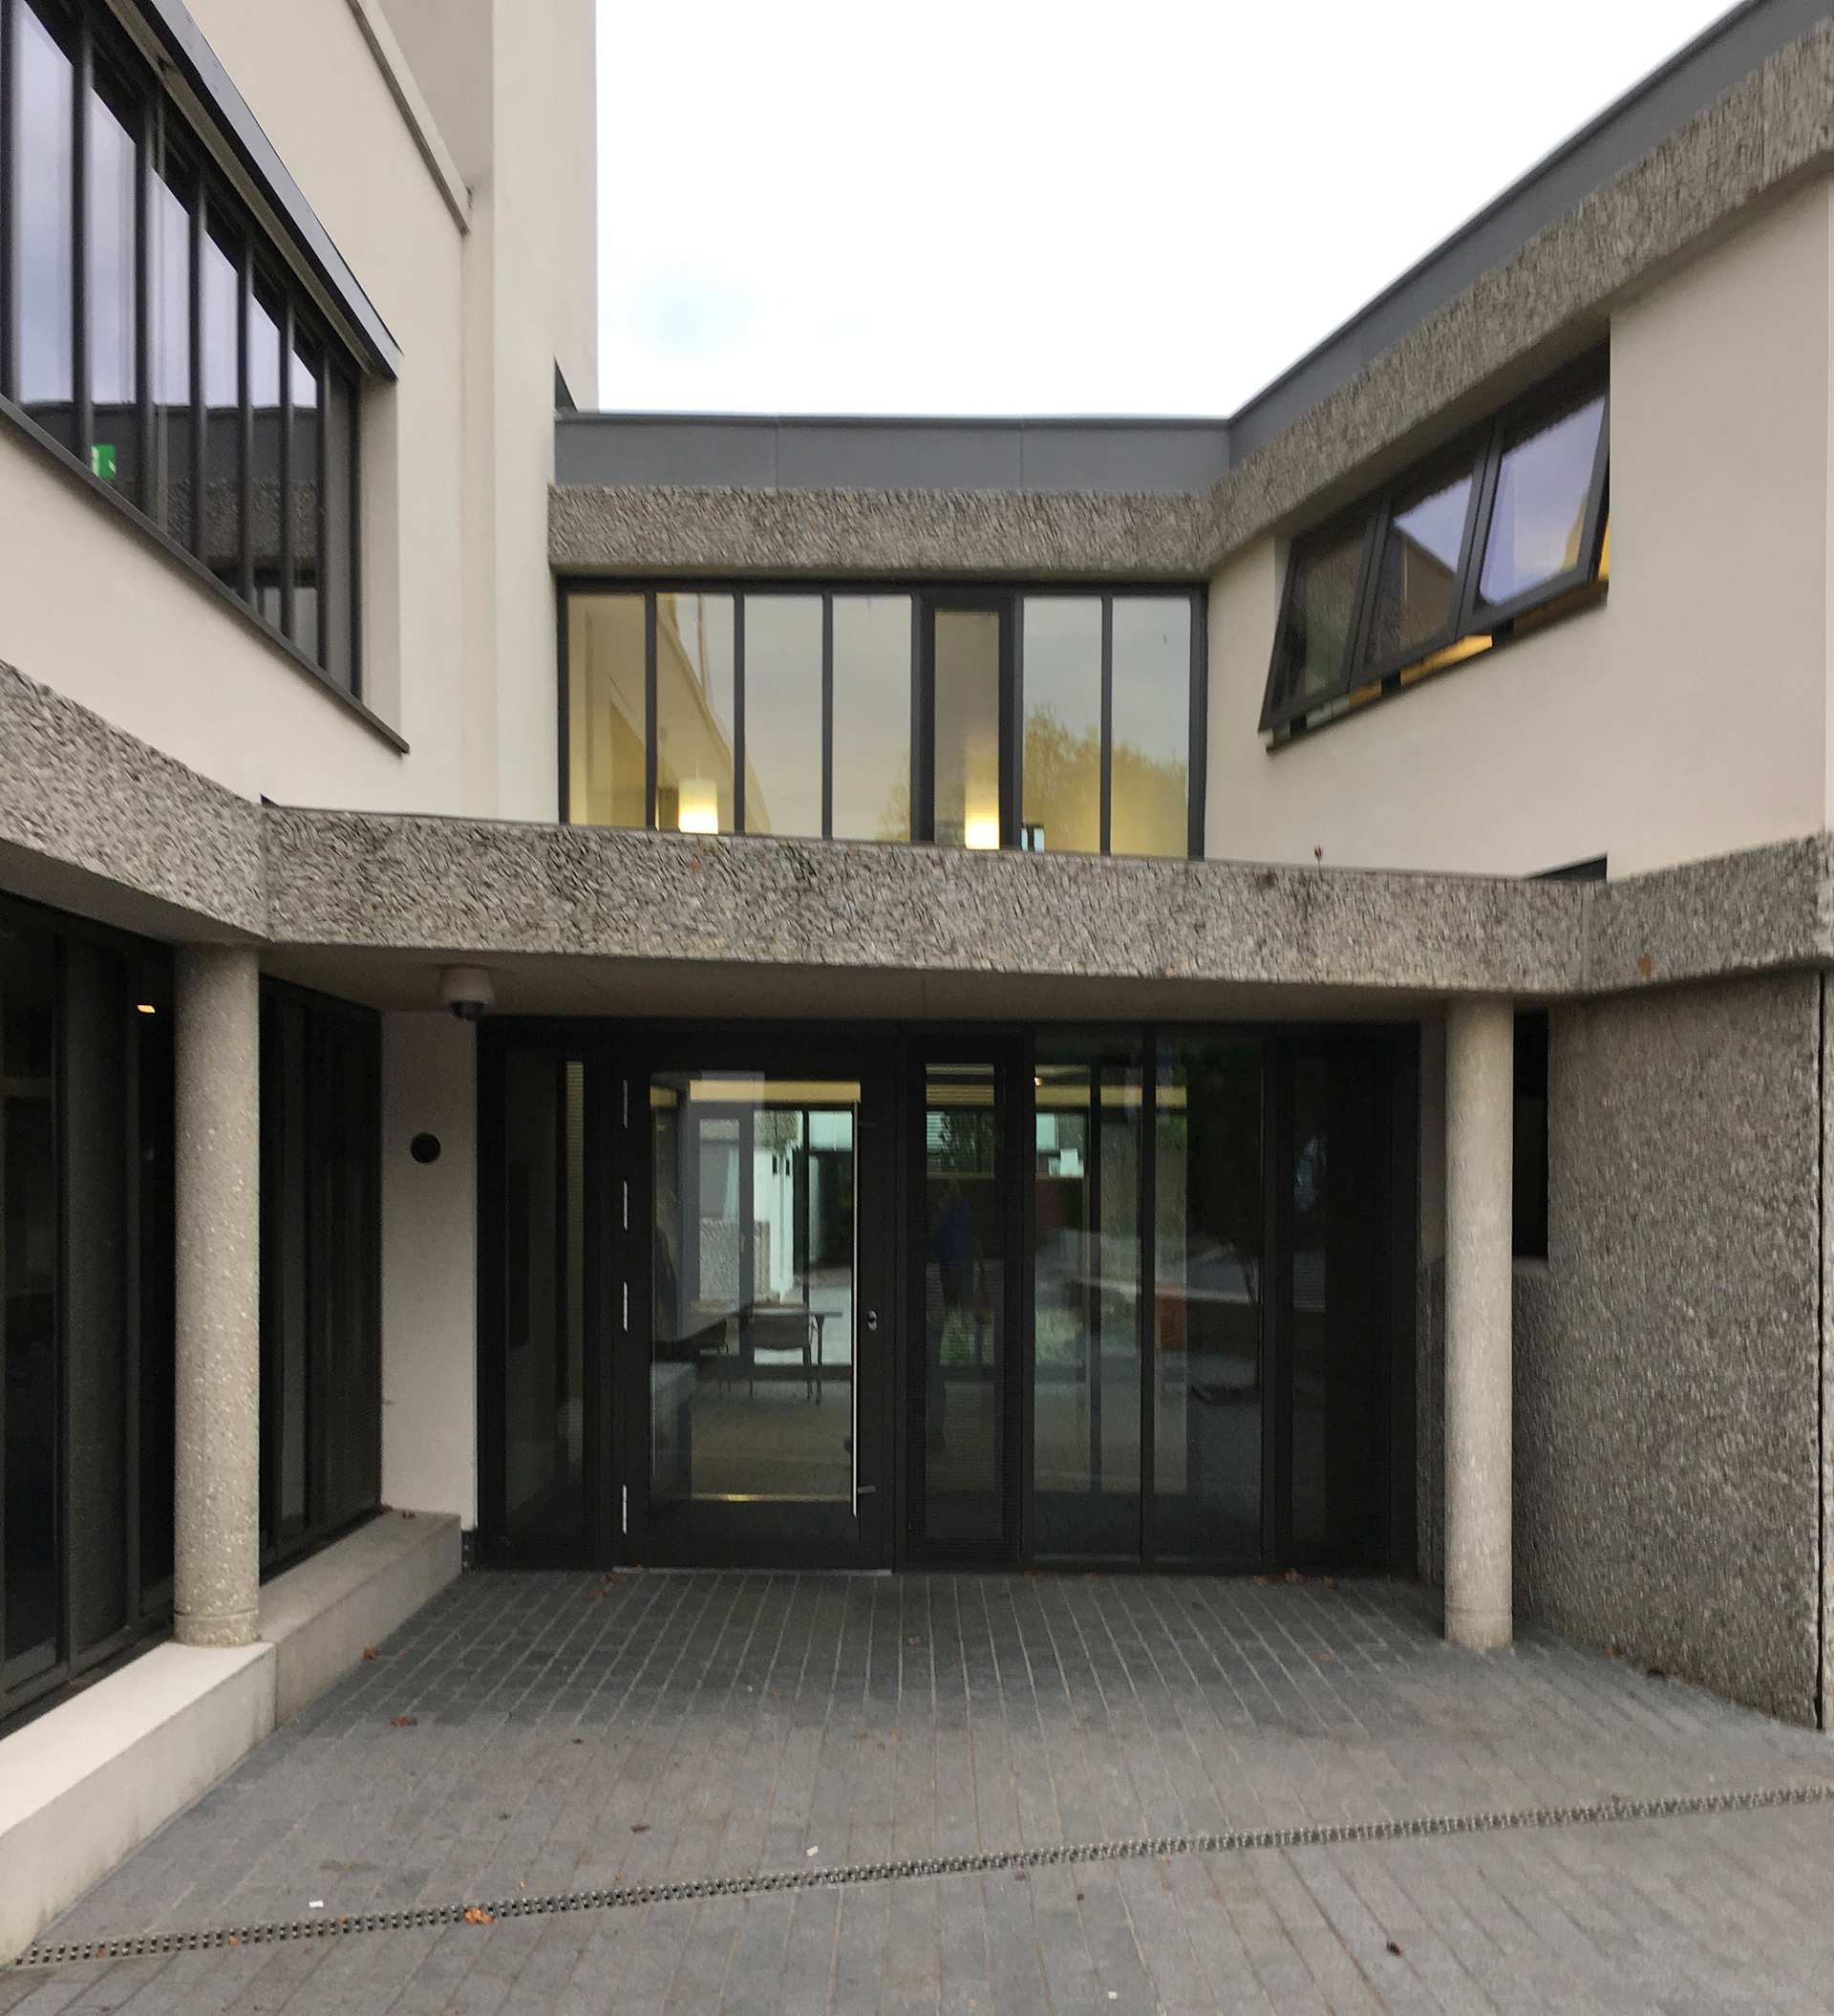 Porters Entrance defined by a simple overhang | Modernity in/as Heritage – The architecture of Wolfson College, Oxford | Amit Khanna | STIR